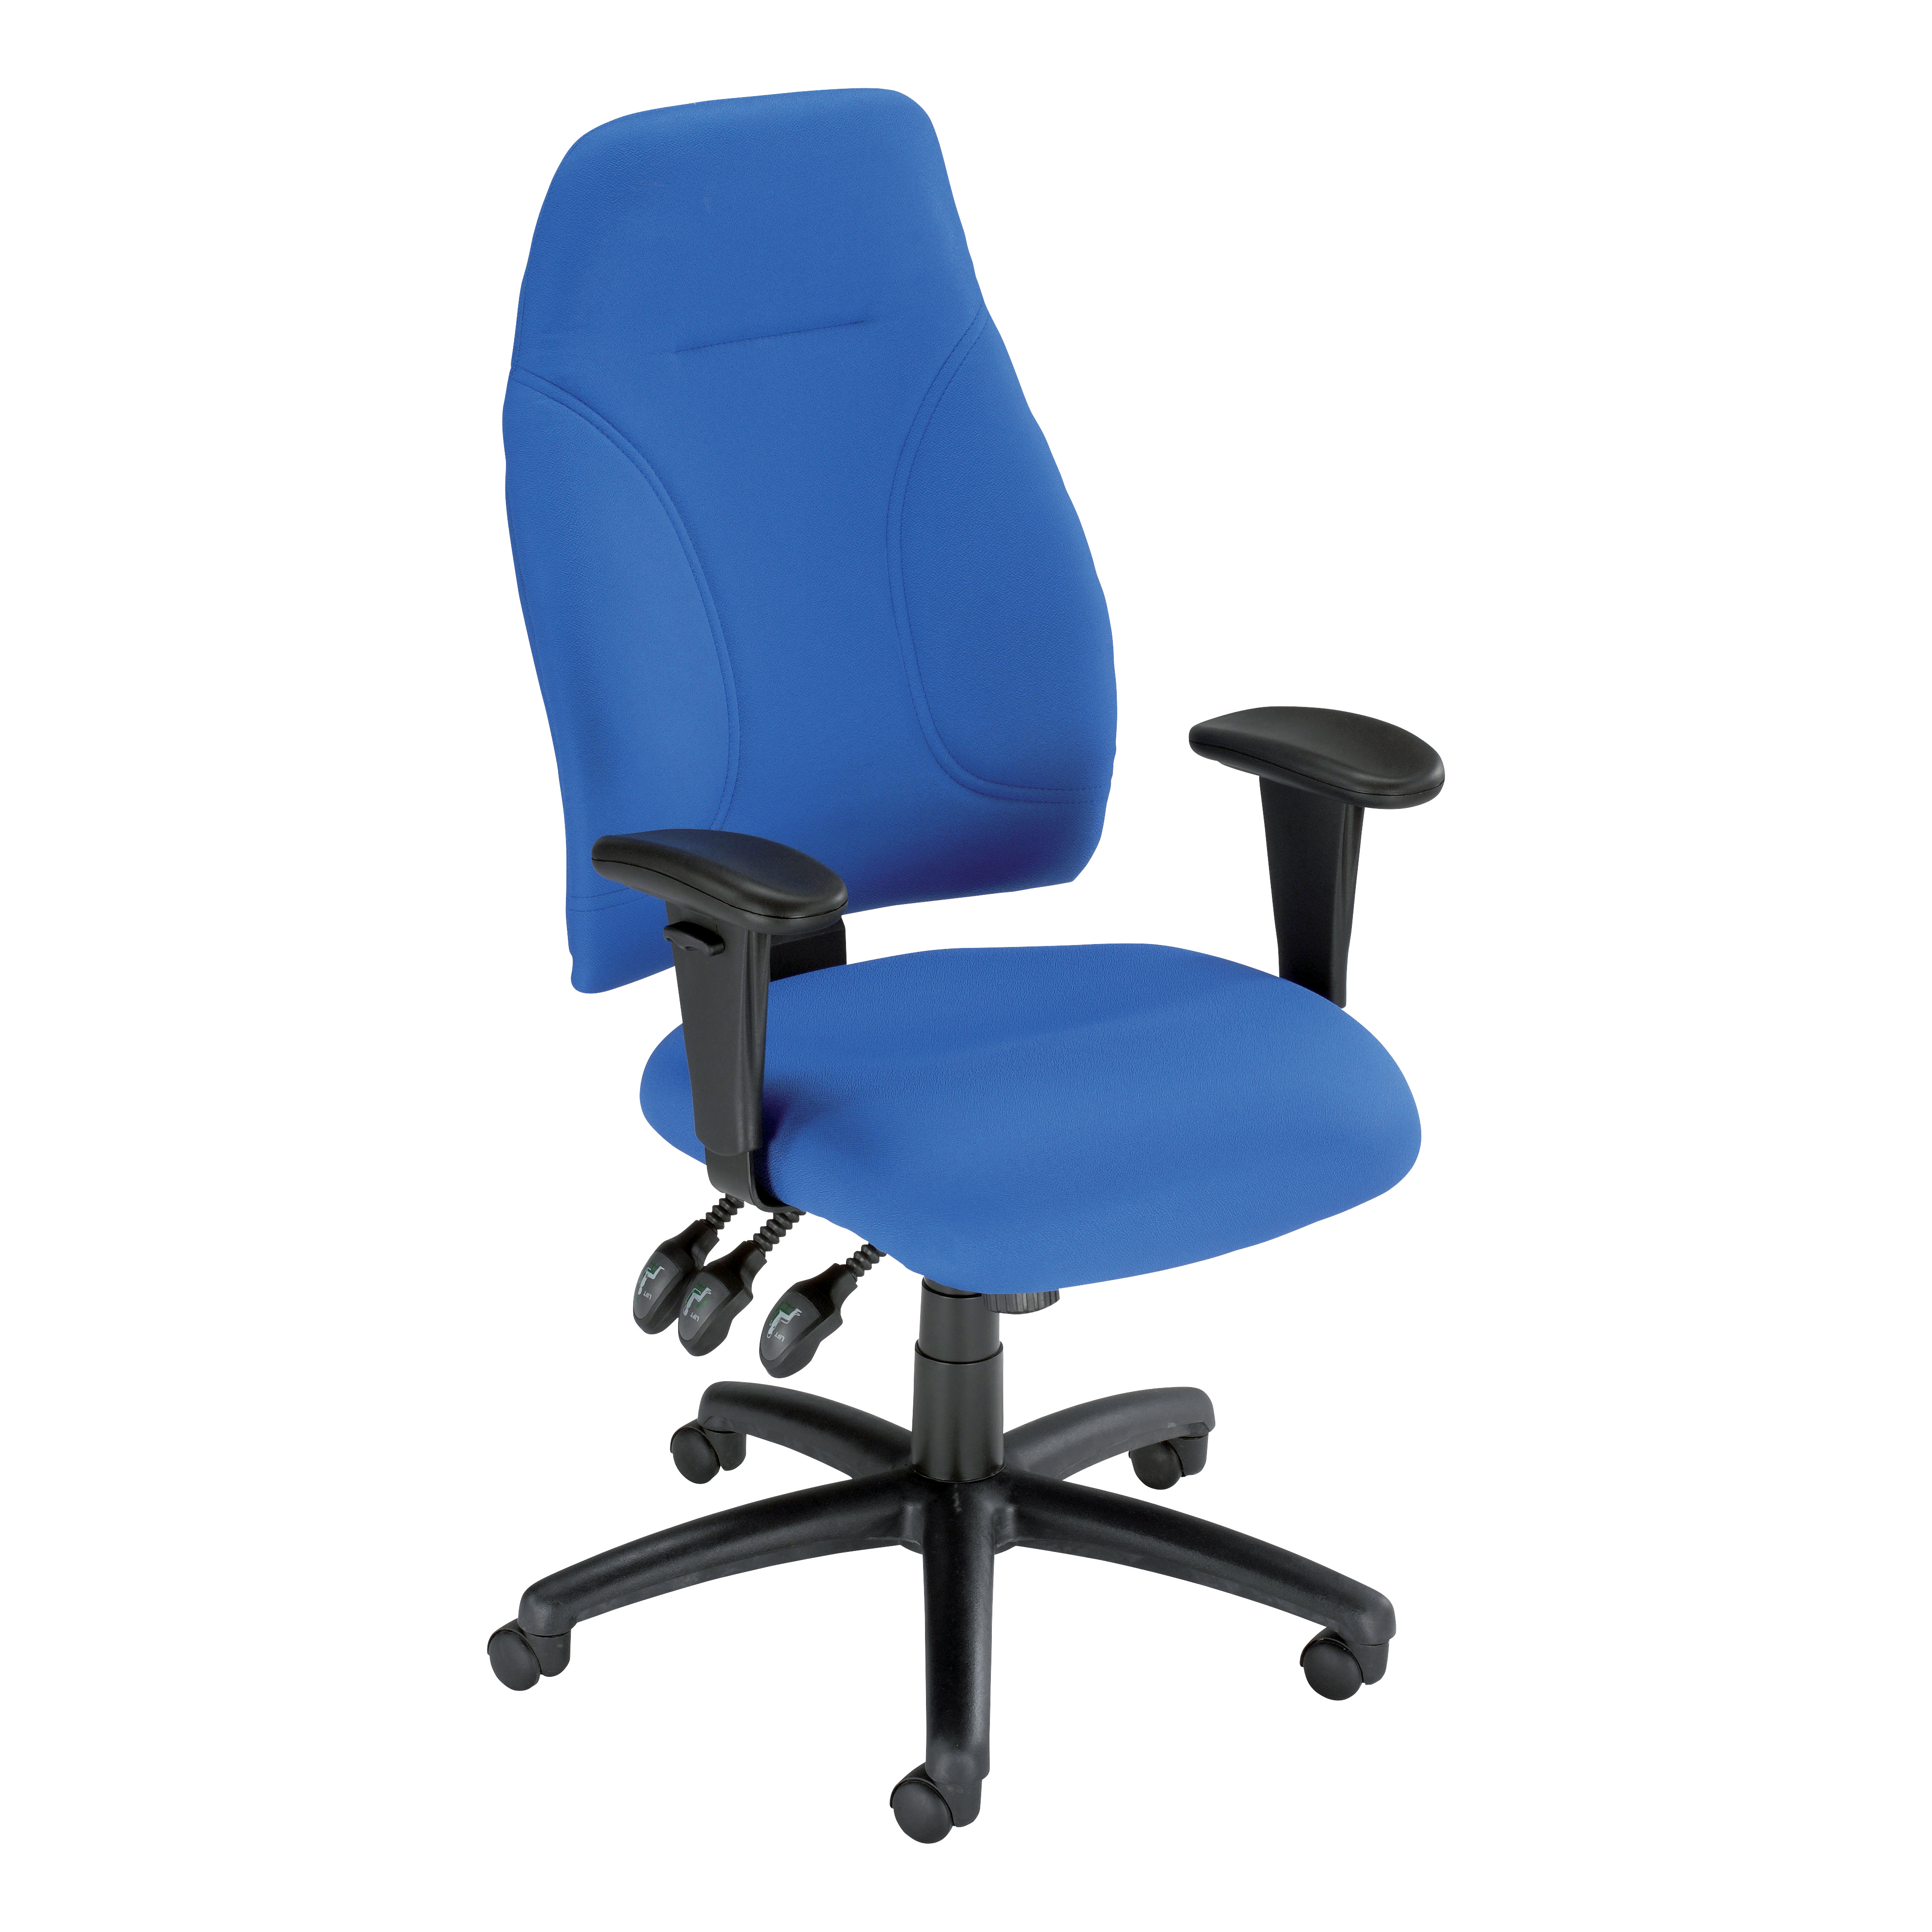 posture chair with back mia moda high pink trexus asynchronous blue